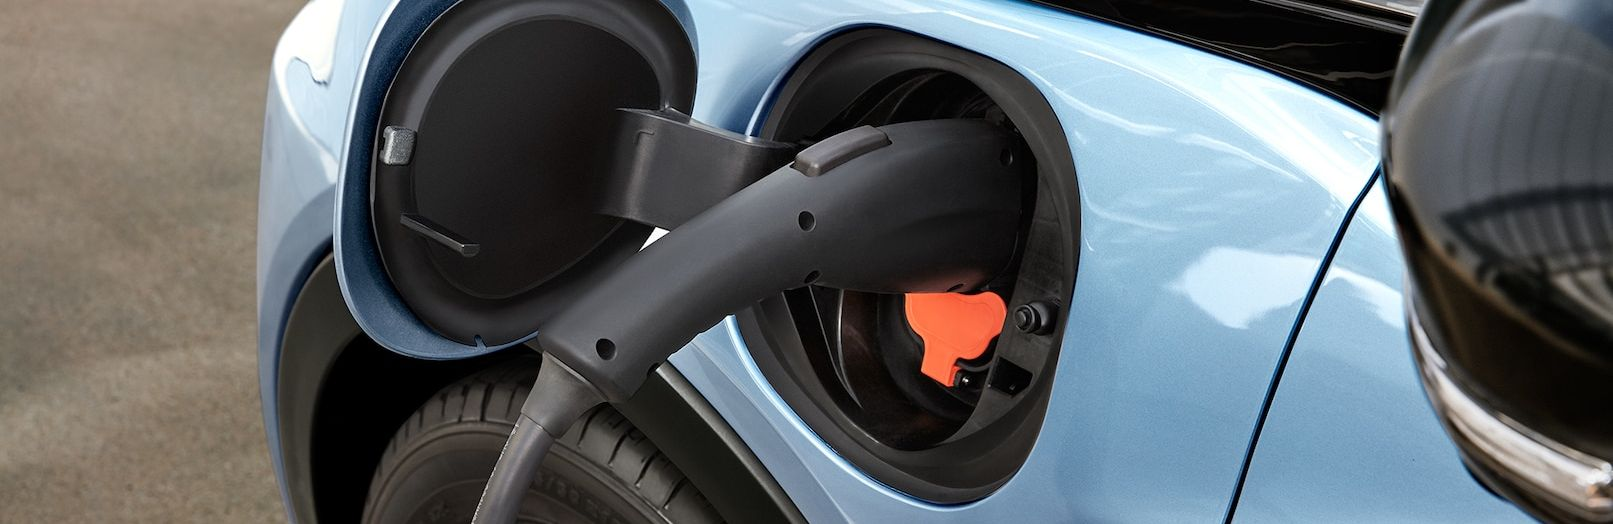 Charge Up the 2018 Bolt EV!